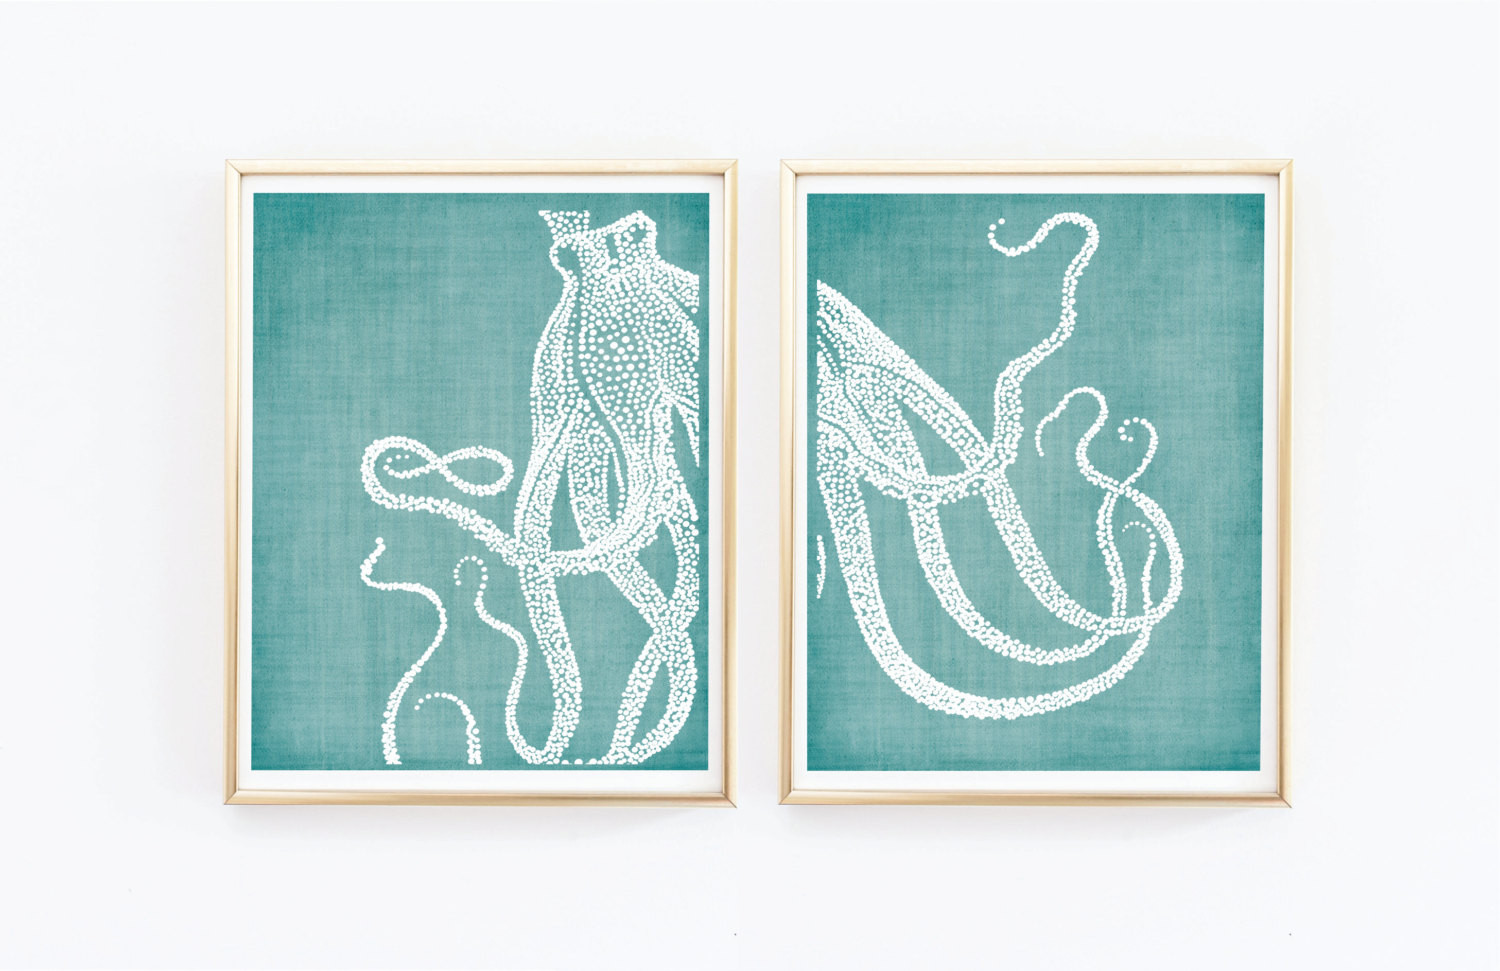 Best ideas about Coastal Wall Art . Save or Pin Octopus Prints Coastal Wall Decor Beach Decor Nautical Now.